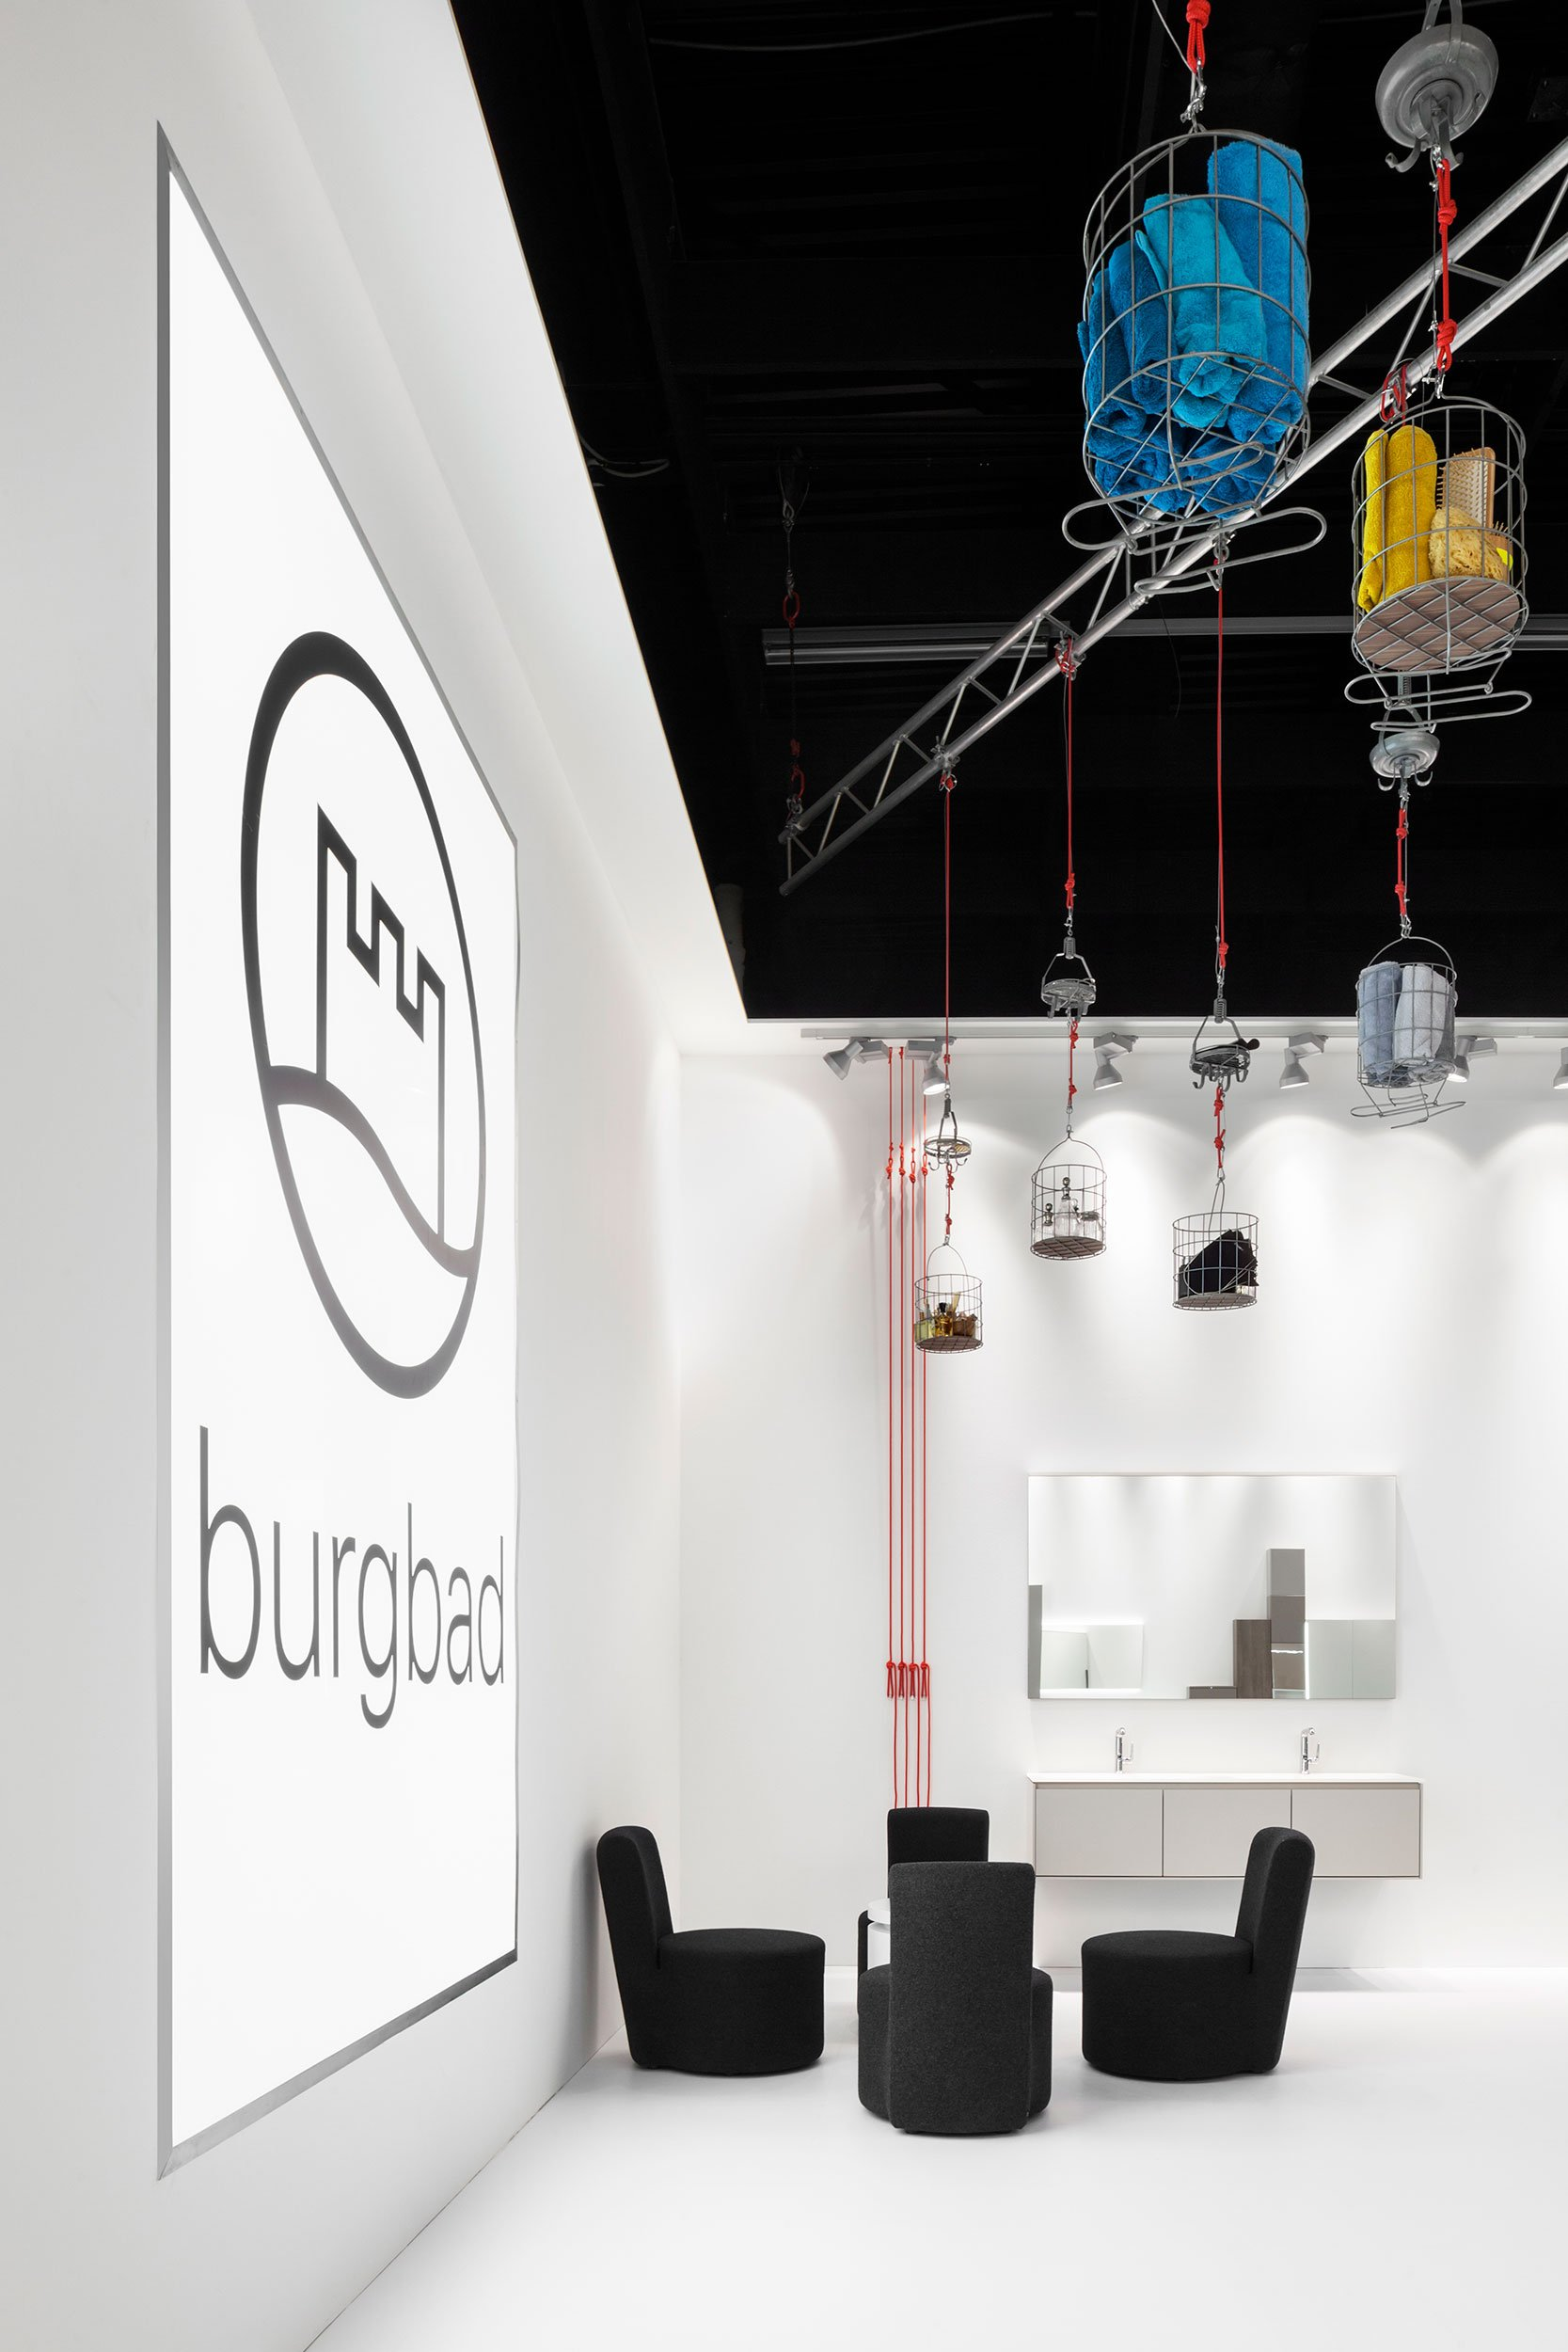 https://farconsulting.de/wp-content/uploads/2020/09/04_Pull_Messestand_burgbad_imm_cologne_2014_FAR.jpg